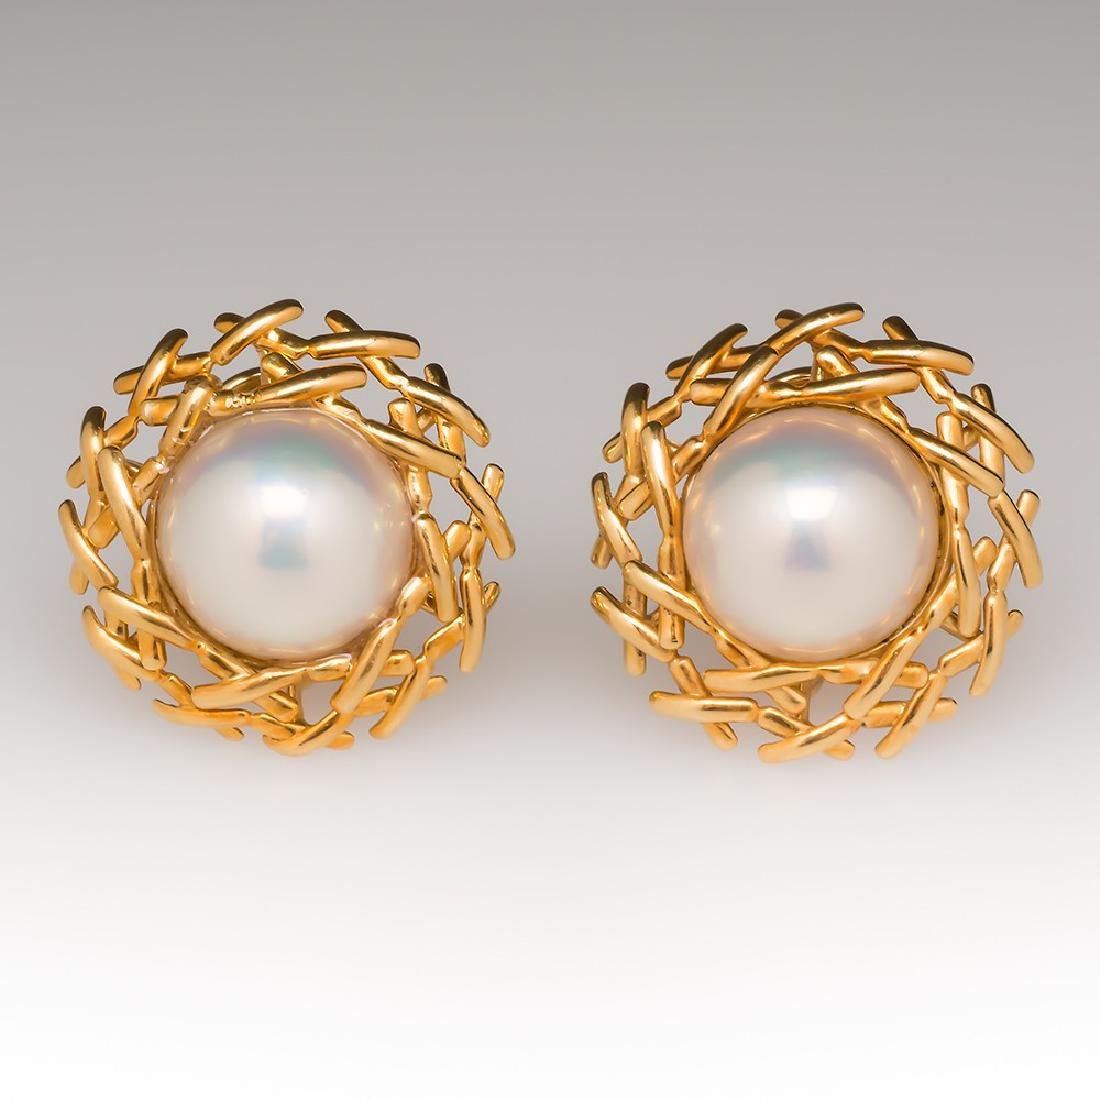 Tiffany & Co 18K Gold Mabe Pearl Earring Clips